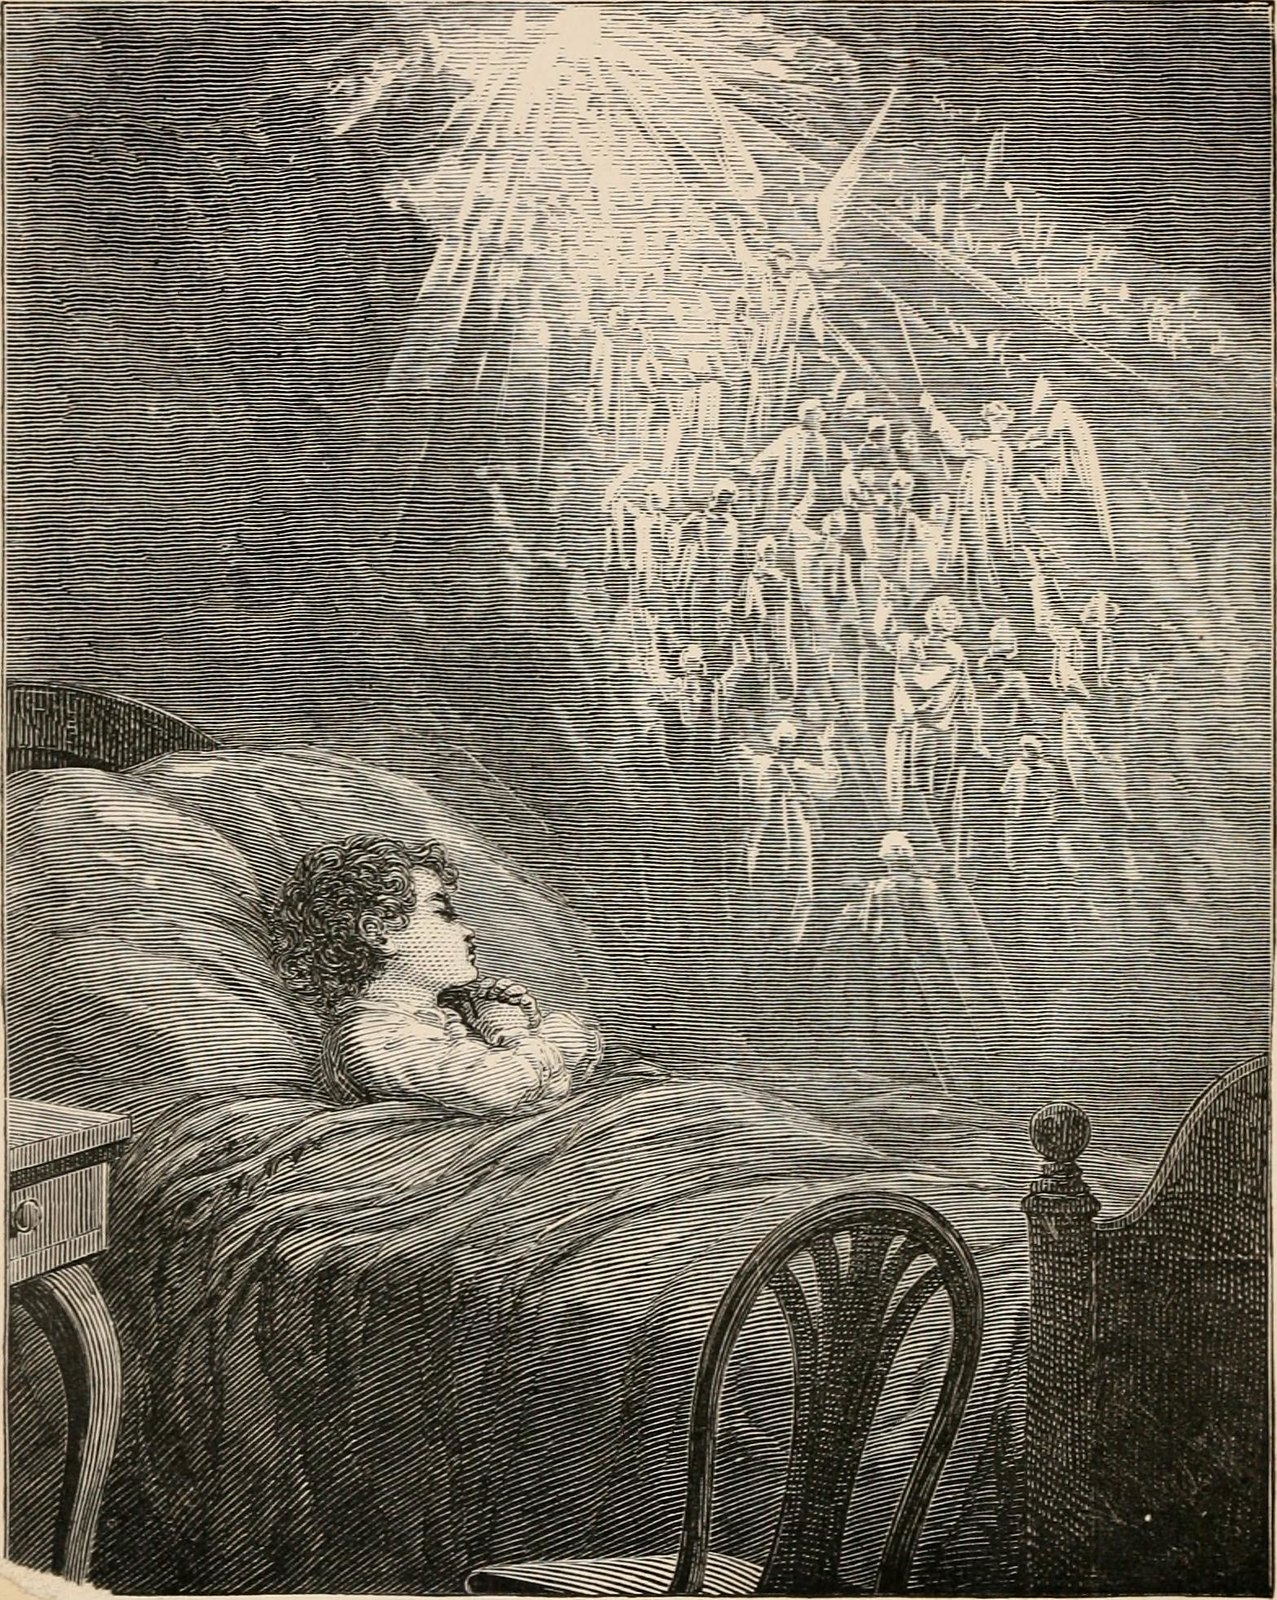 From  A child's dream of a star  | Charles Dickens | 1871 |  etching